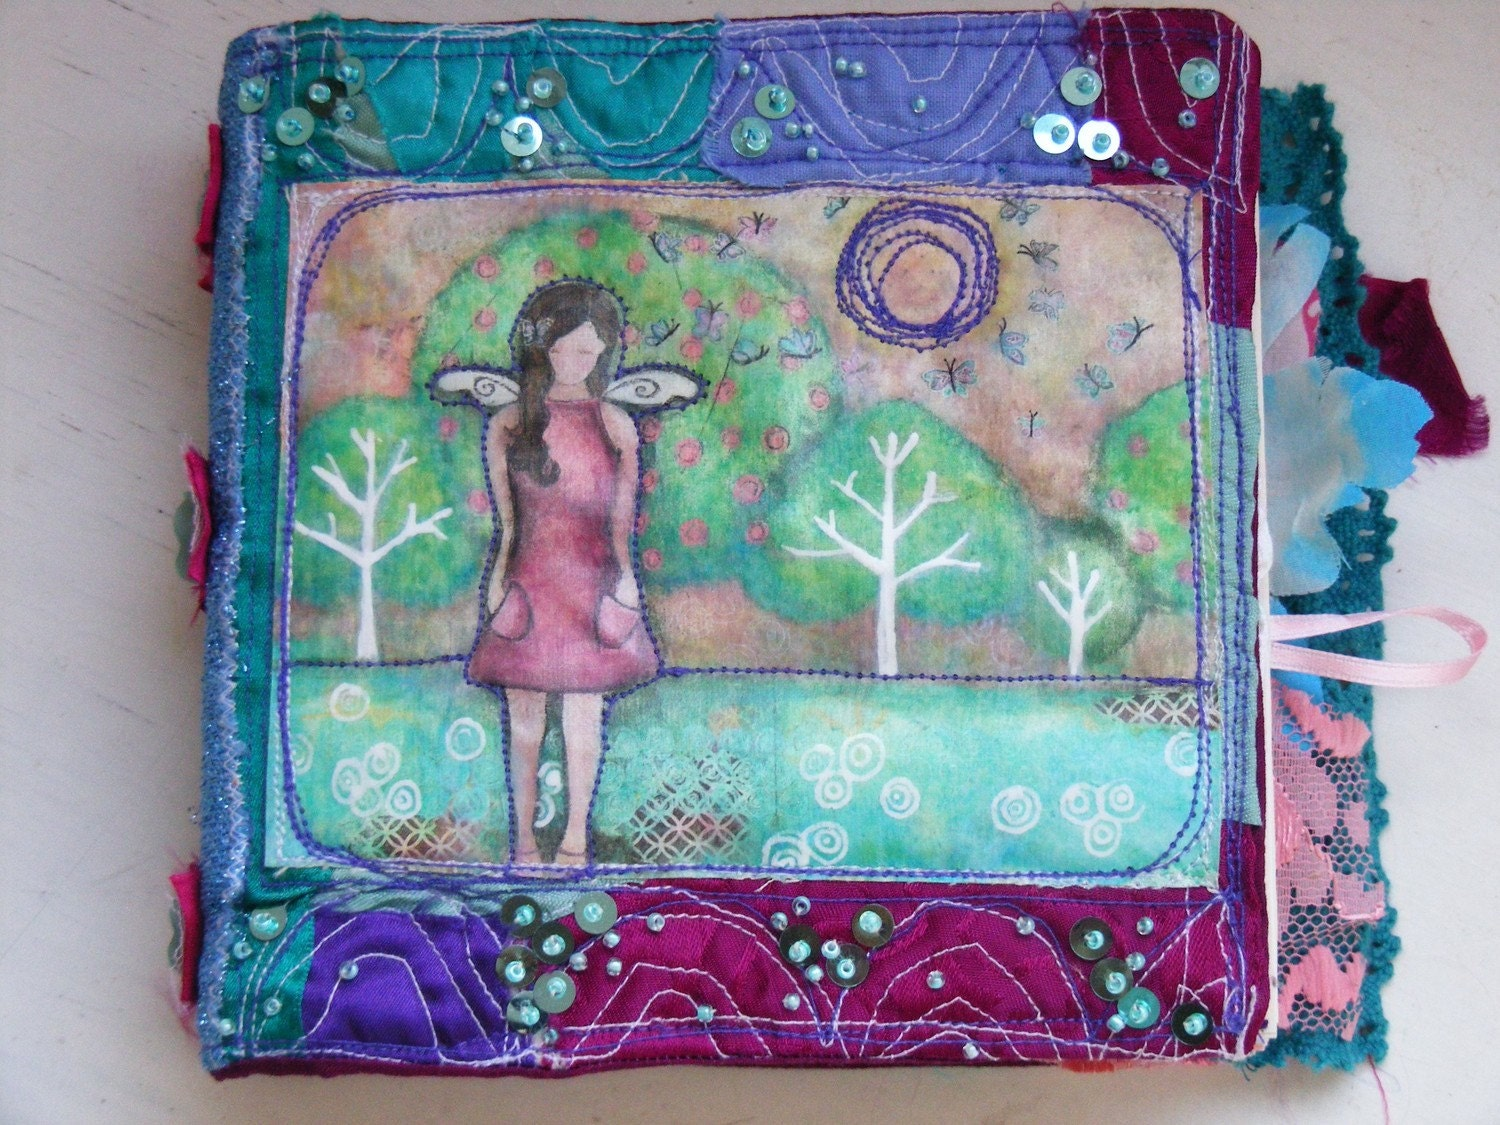 Unique Fabric Journal with mixed media print